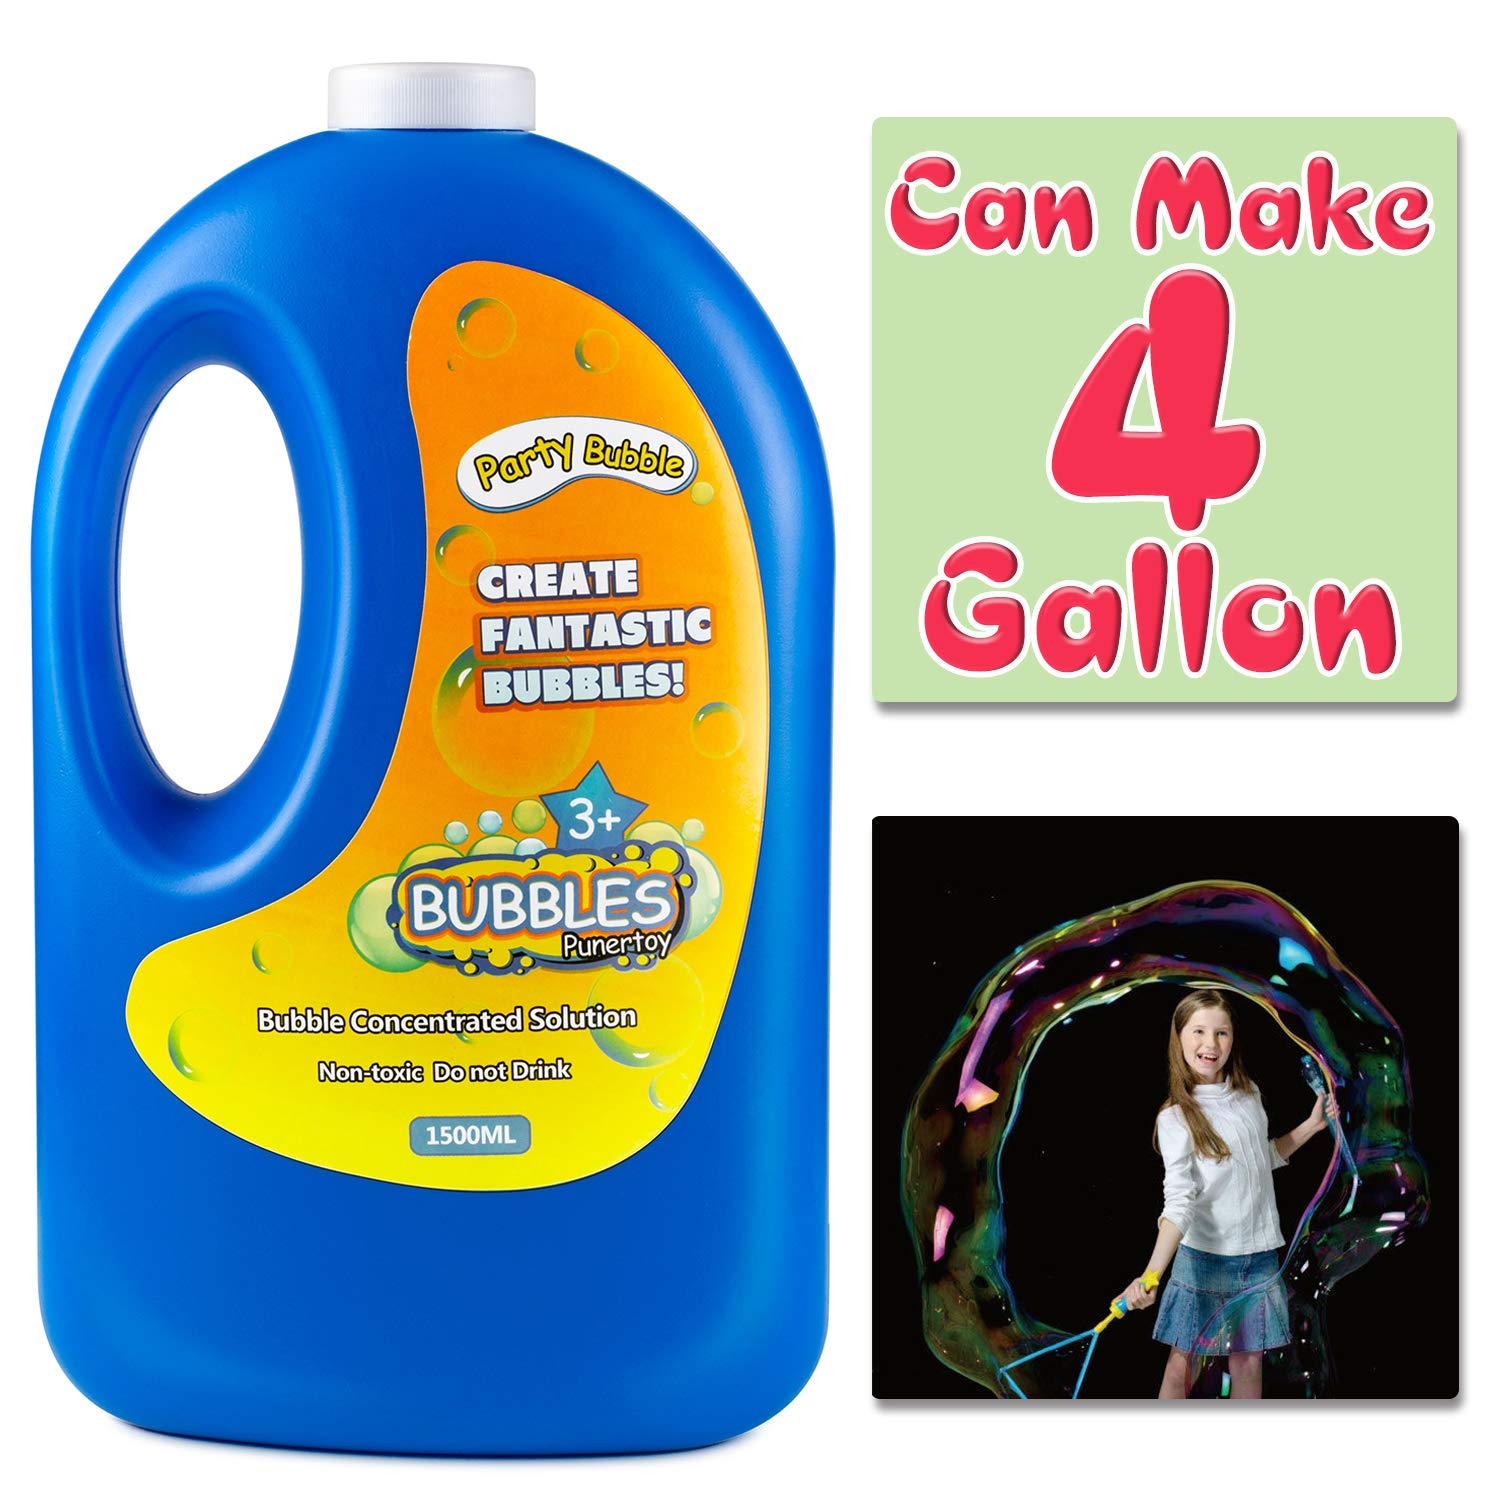 54 Ounce Concentrated Bubble Solution Refill(Can Make 4 Gallon), Big Bottle for Jumbo Giant Bubble Soap Bubble Wand Blower Machine Gun Maker, Bath Time, Summer Outdoor Gift for Girl Boy Kid Child by Punertoy (Image #1)